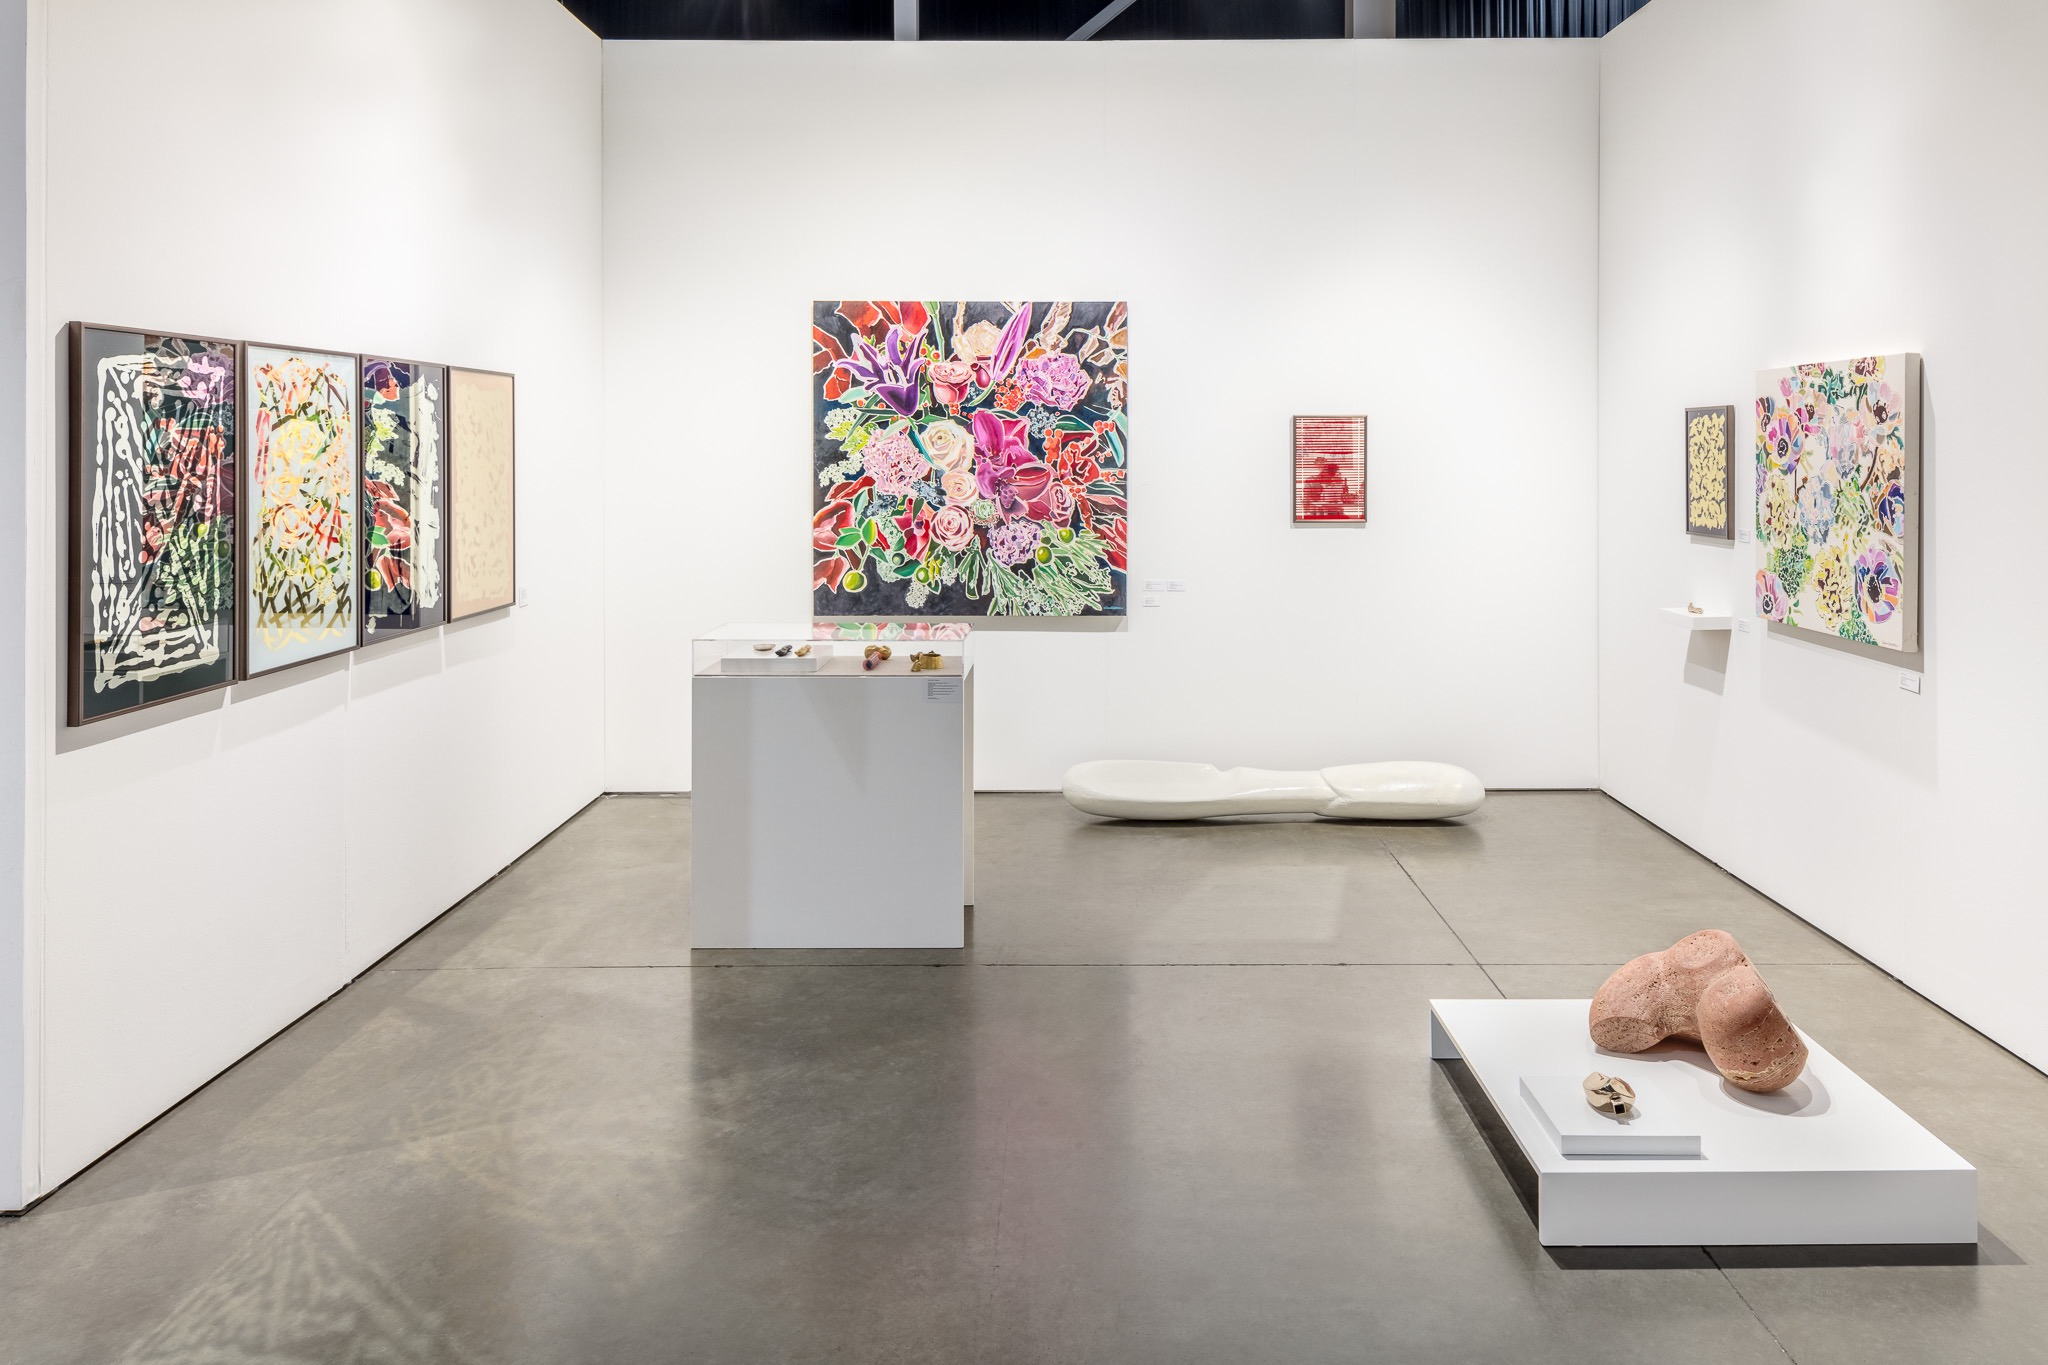 SEASON Booth D6 with works by Sean Barton and Seth David Friedman. Photo by Nathaniel Willson. © Nathaniel Willson 2016. All rights reserved.